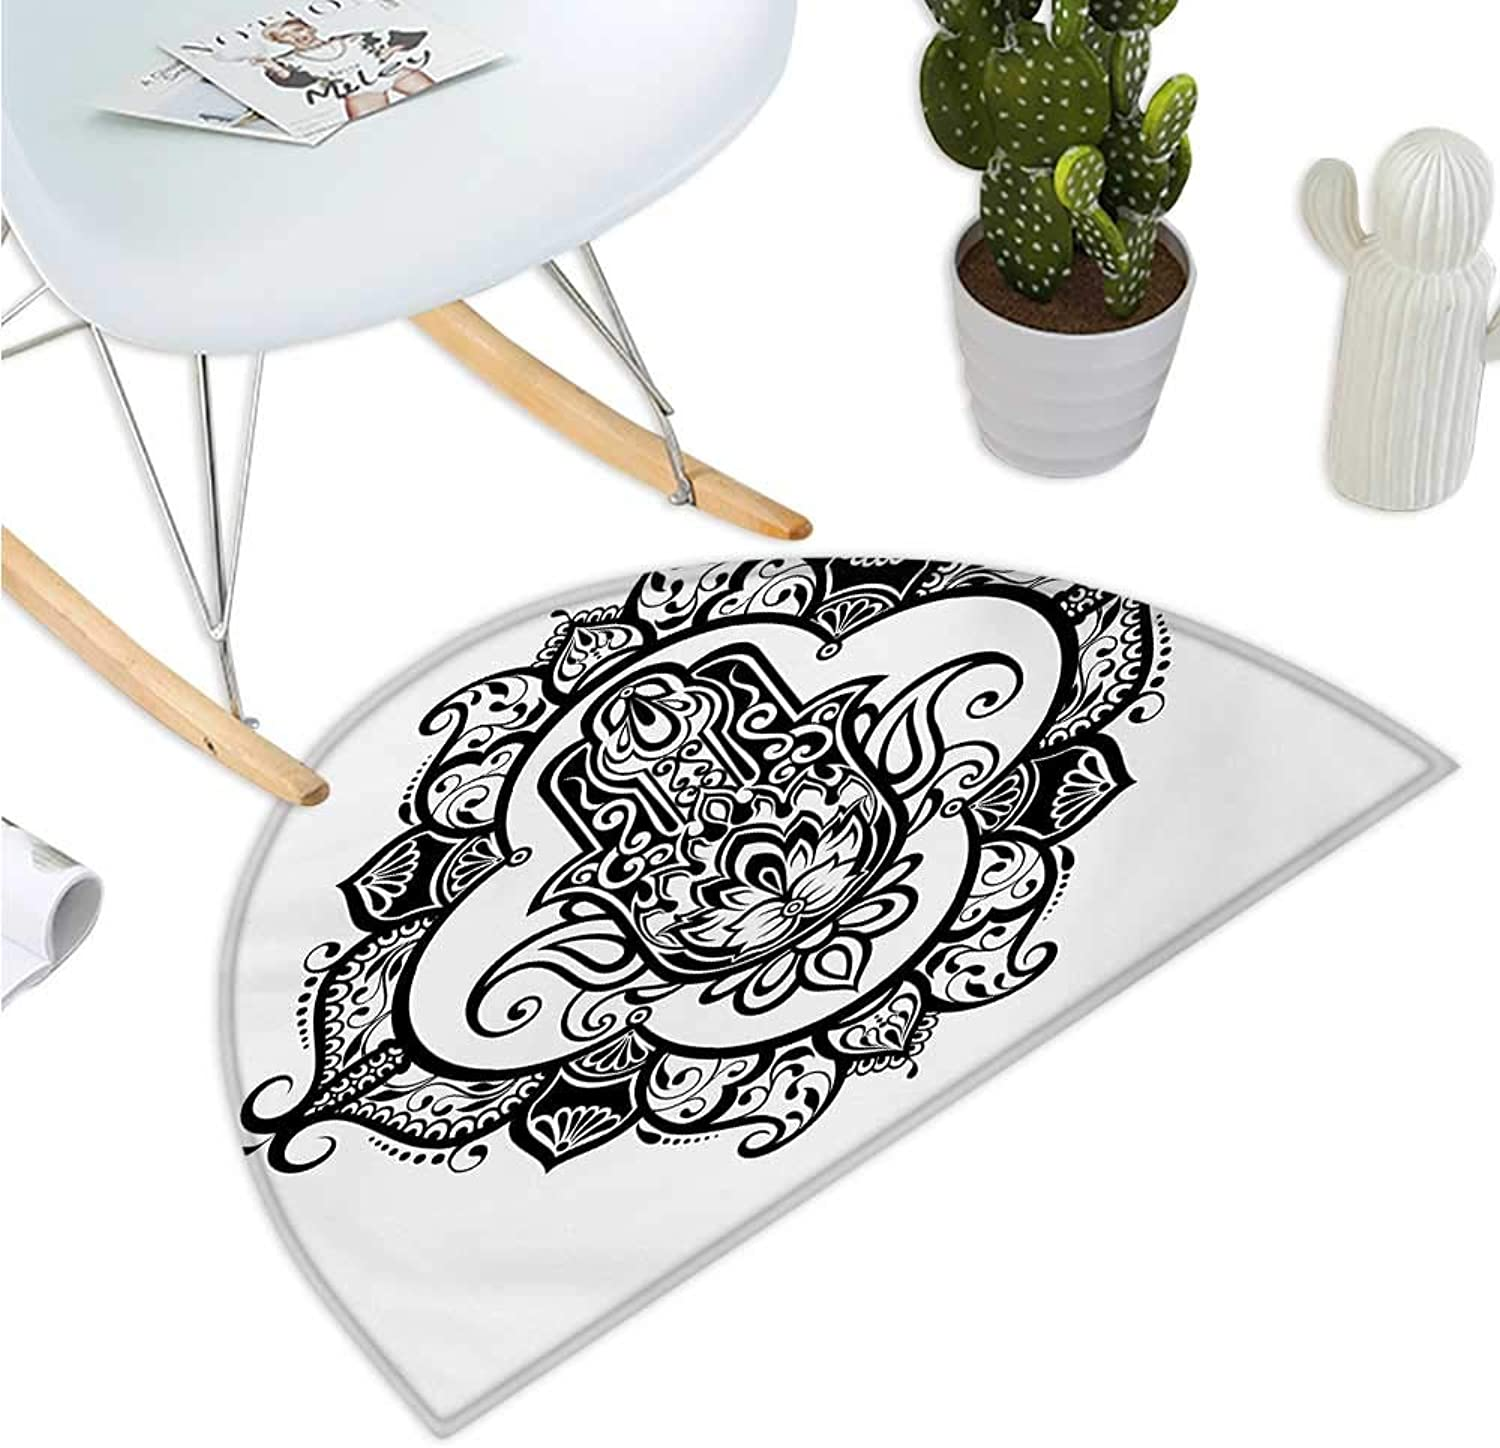 Hamsa Half Round Door mats Curvy Ornate Frame with Antique Religious Motif Floral Ethnic Tattoo Hand of Fatima Bathroom Mat H 35.4  xD 53.1  Black White